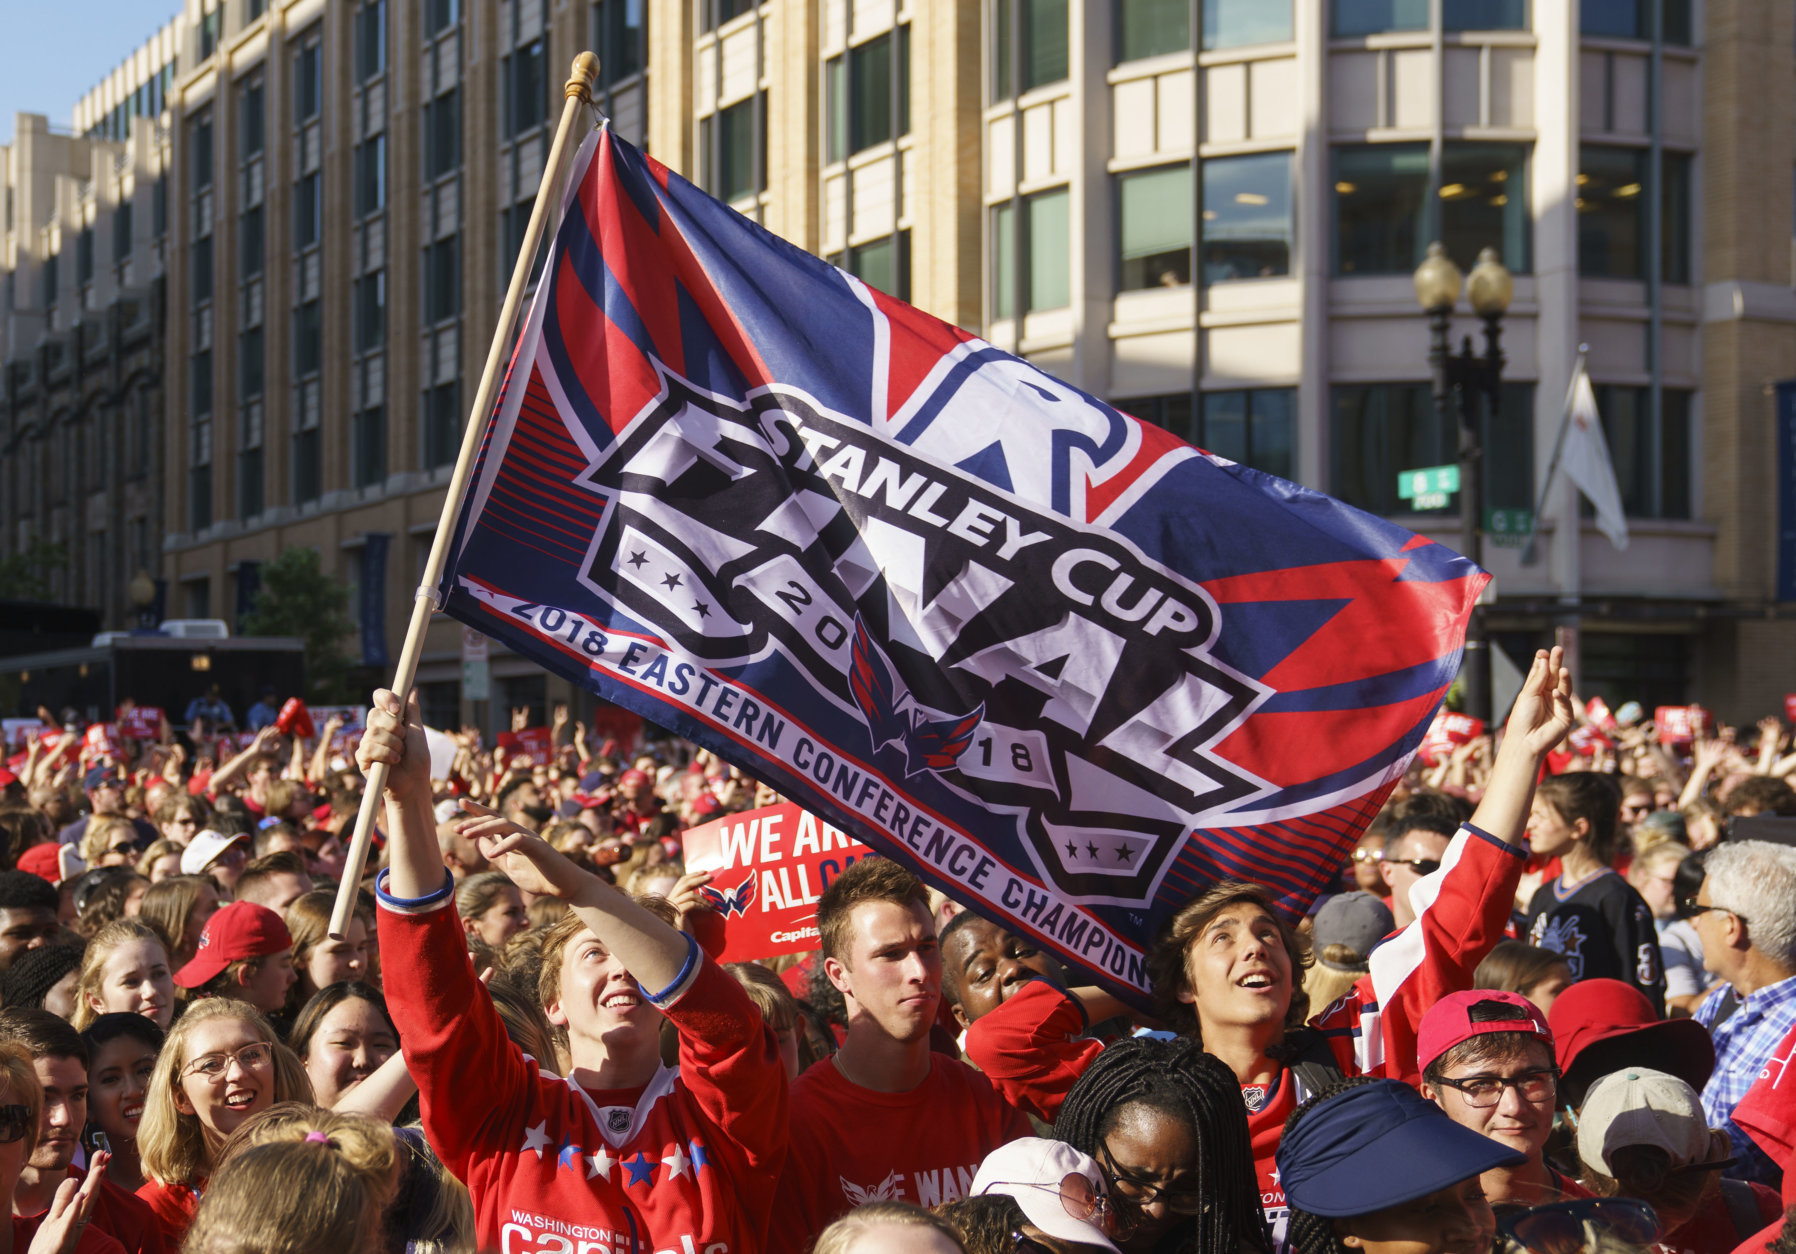 Fans cheer and wave a Stanley Cup Final flag before Game 4 of the NHL hockey Stanley Cup Final between the Washington Capitals and the Vegas Golden Knights, Monday, June 4, 2018, in Washington. (AP Photo/Carolyn Kaster)